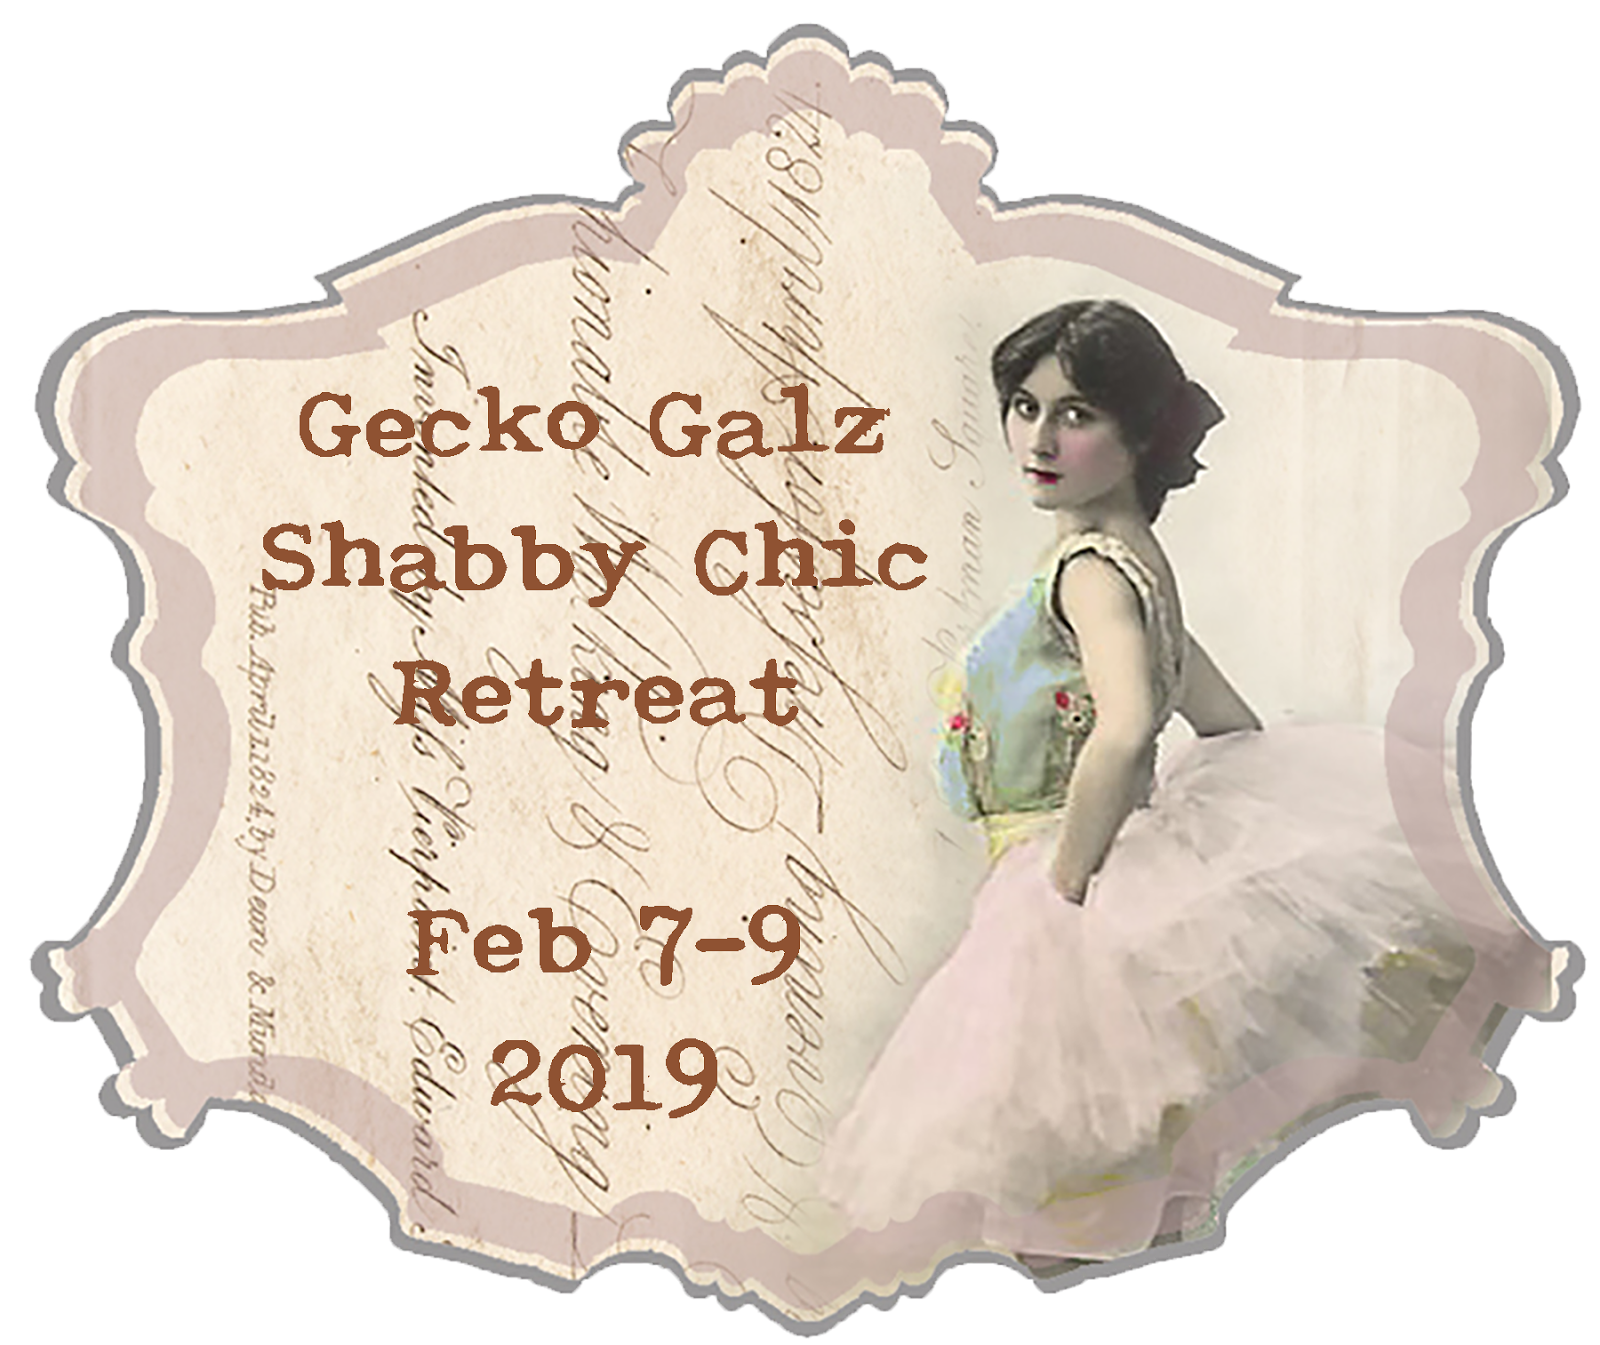 GECKO GALZ 2019 RETREAT